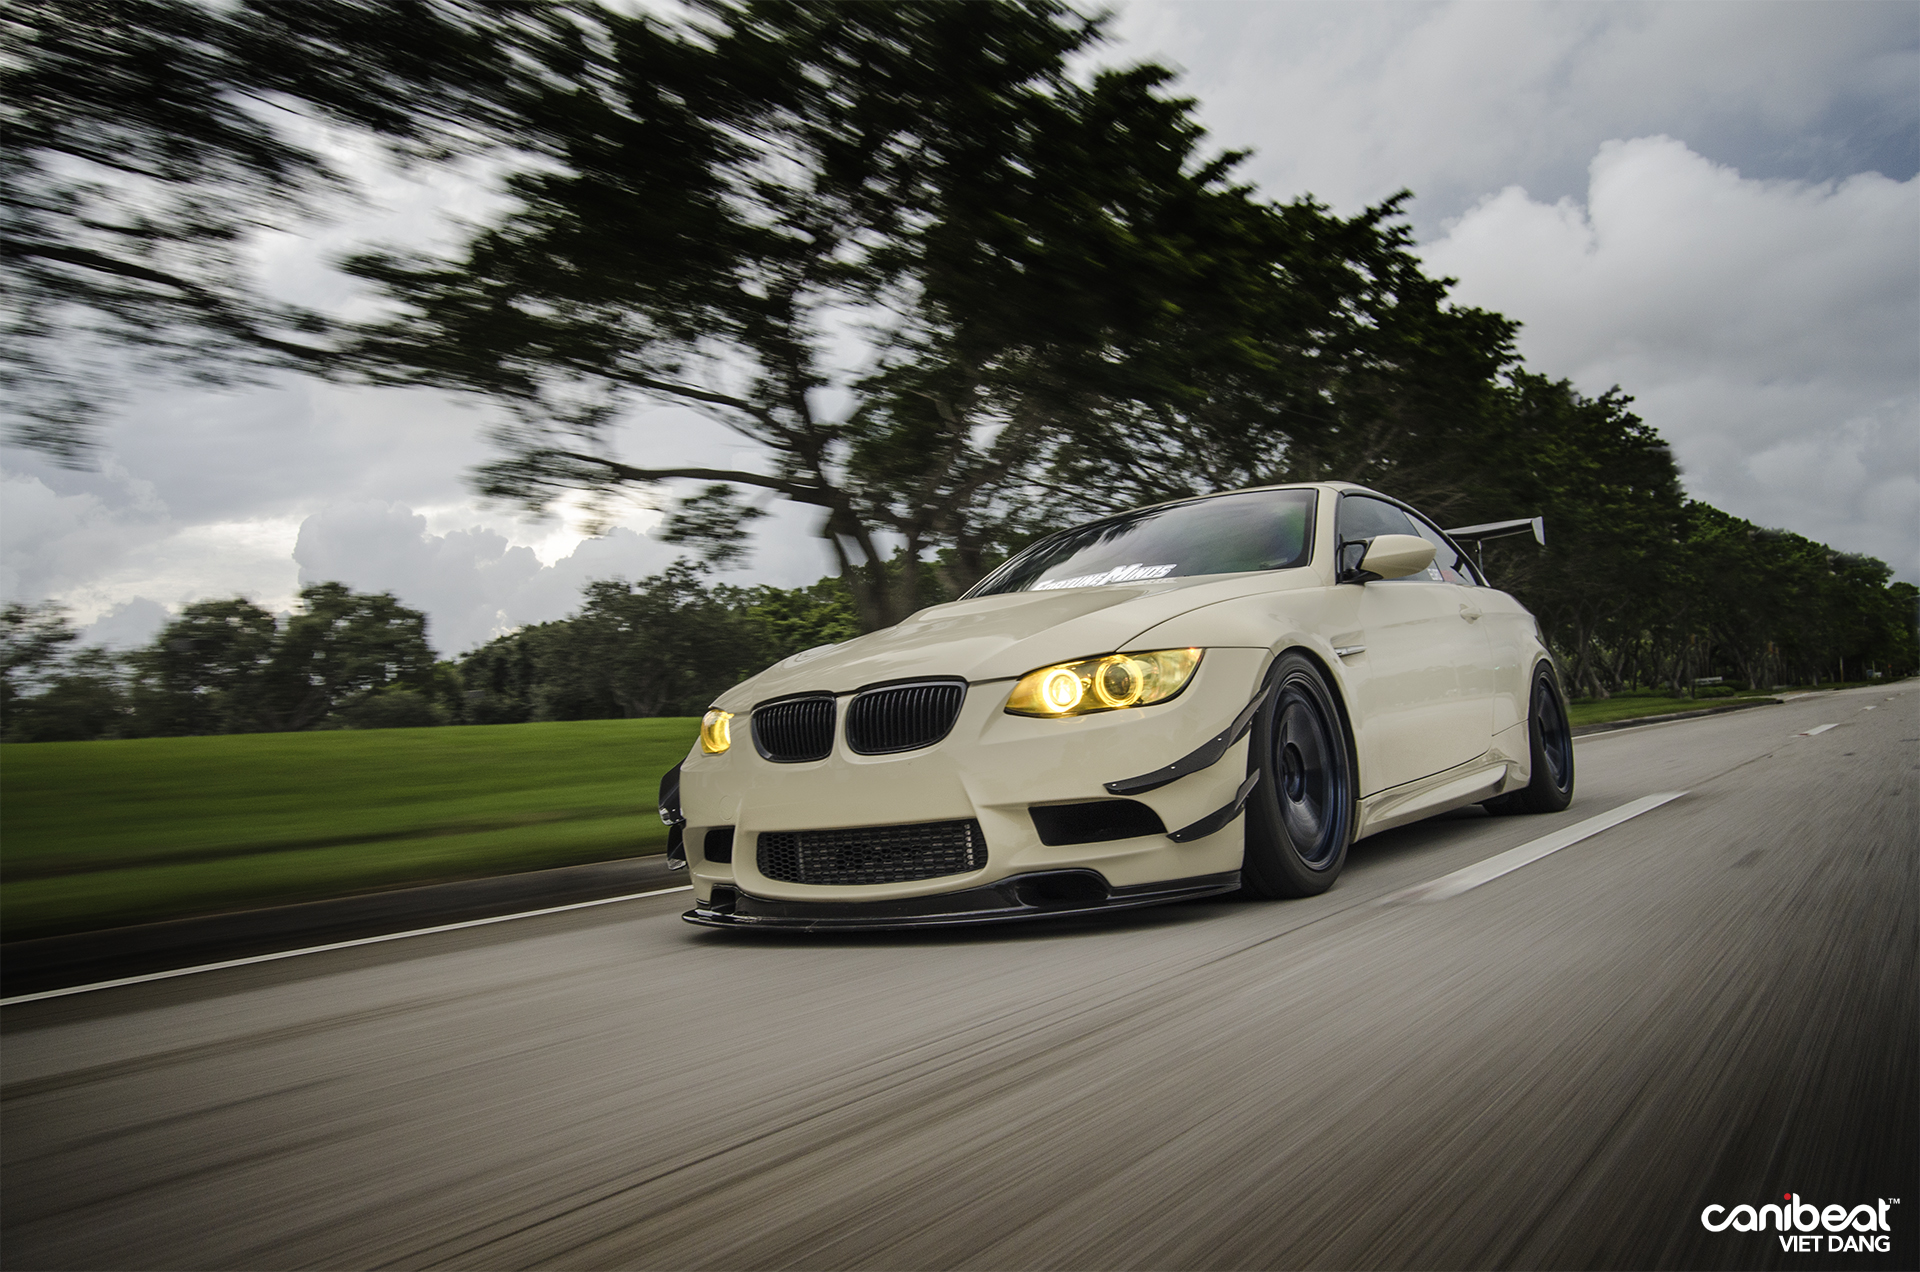 Bmw E93 335i Jdm Syle By John Diep Stiri Bmw Tuning Bmw